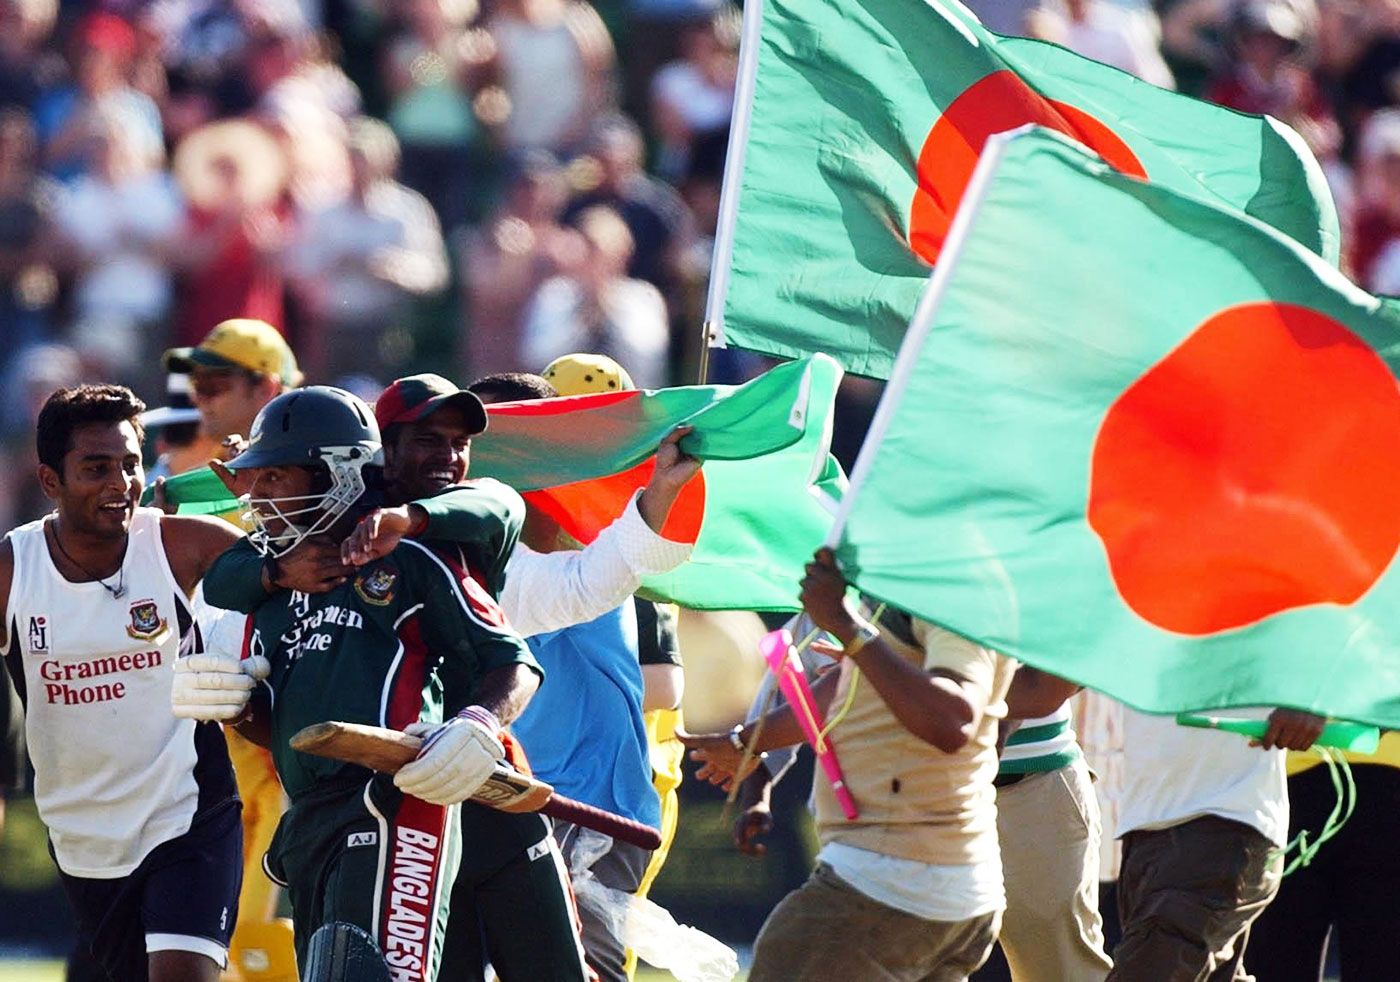 The Cardiff match is the only limited-overs game in which Bangladesh have beaten Australia. In August 2017, they won a Test against them for the first time, in Mirpur